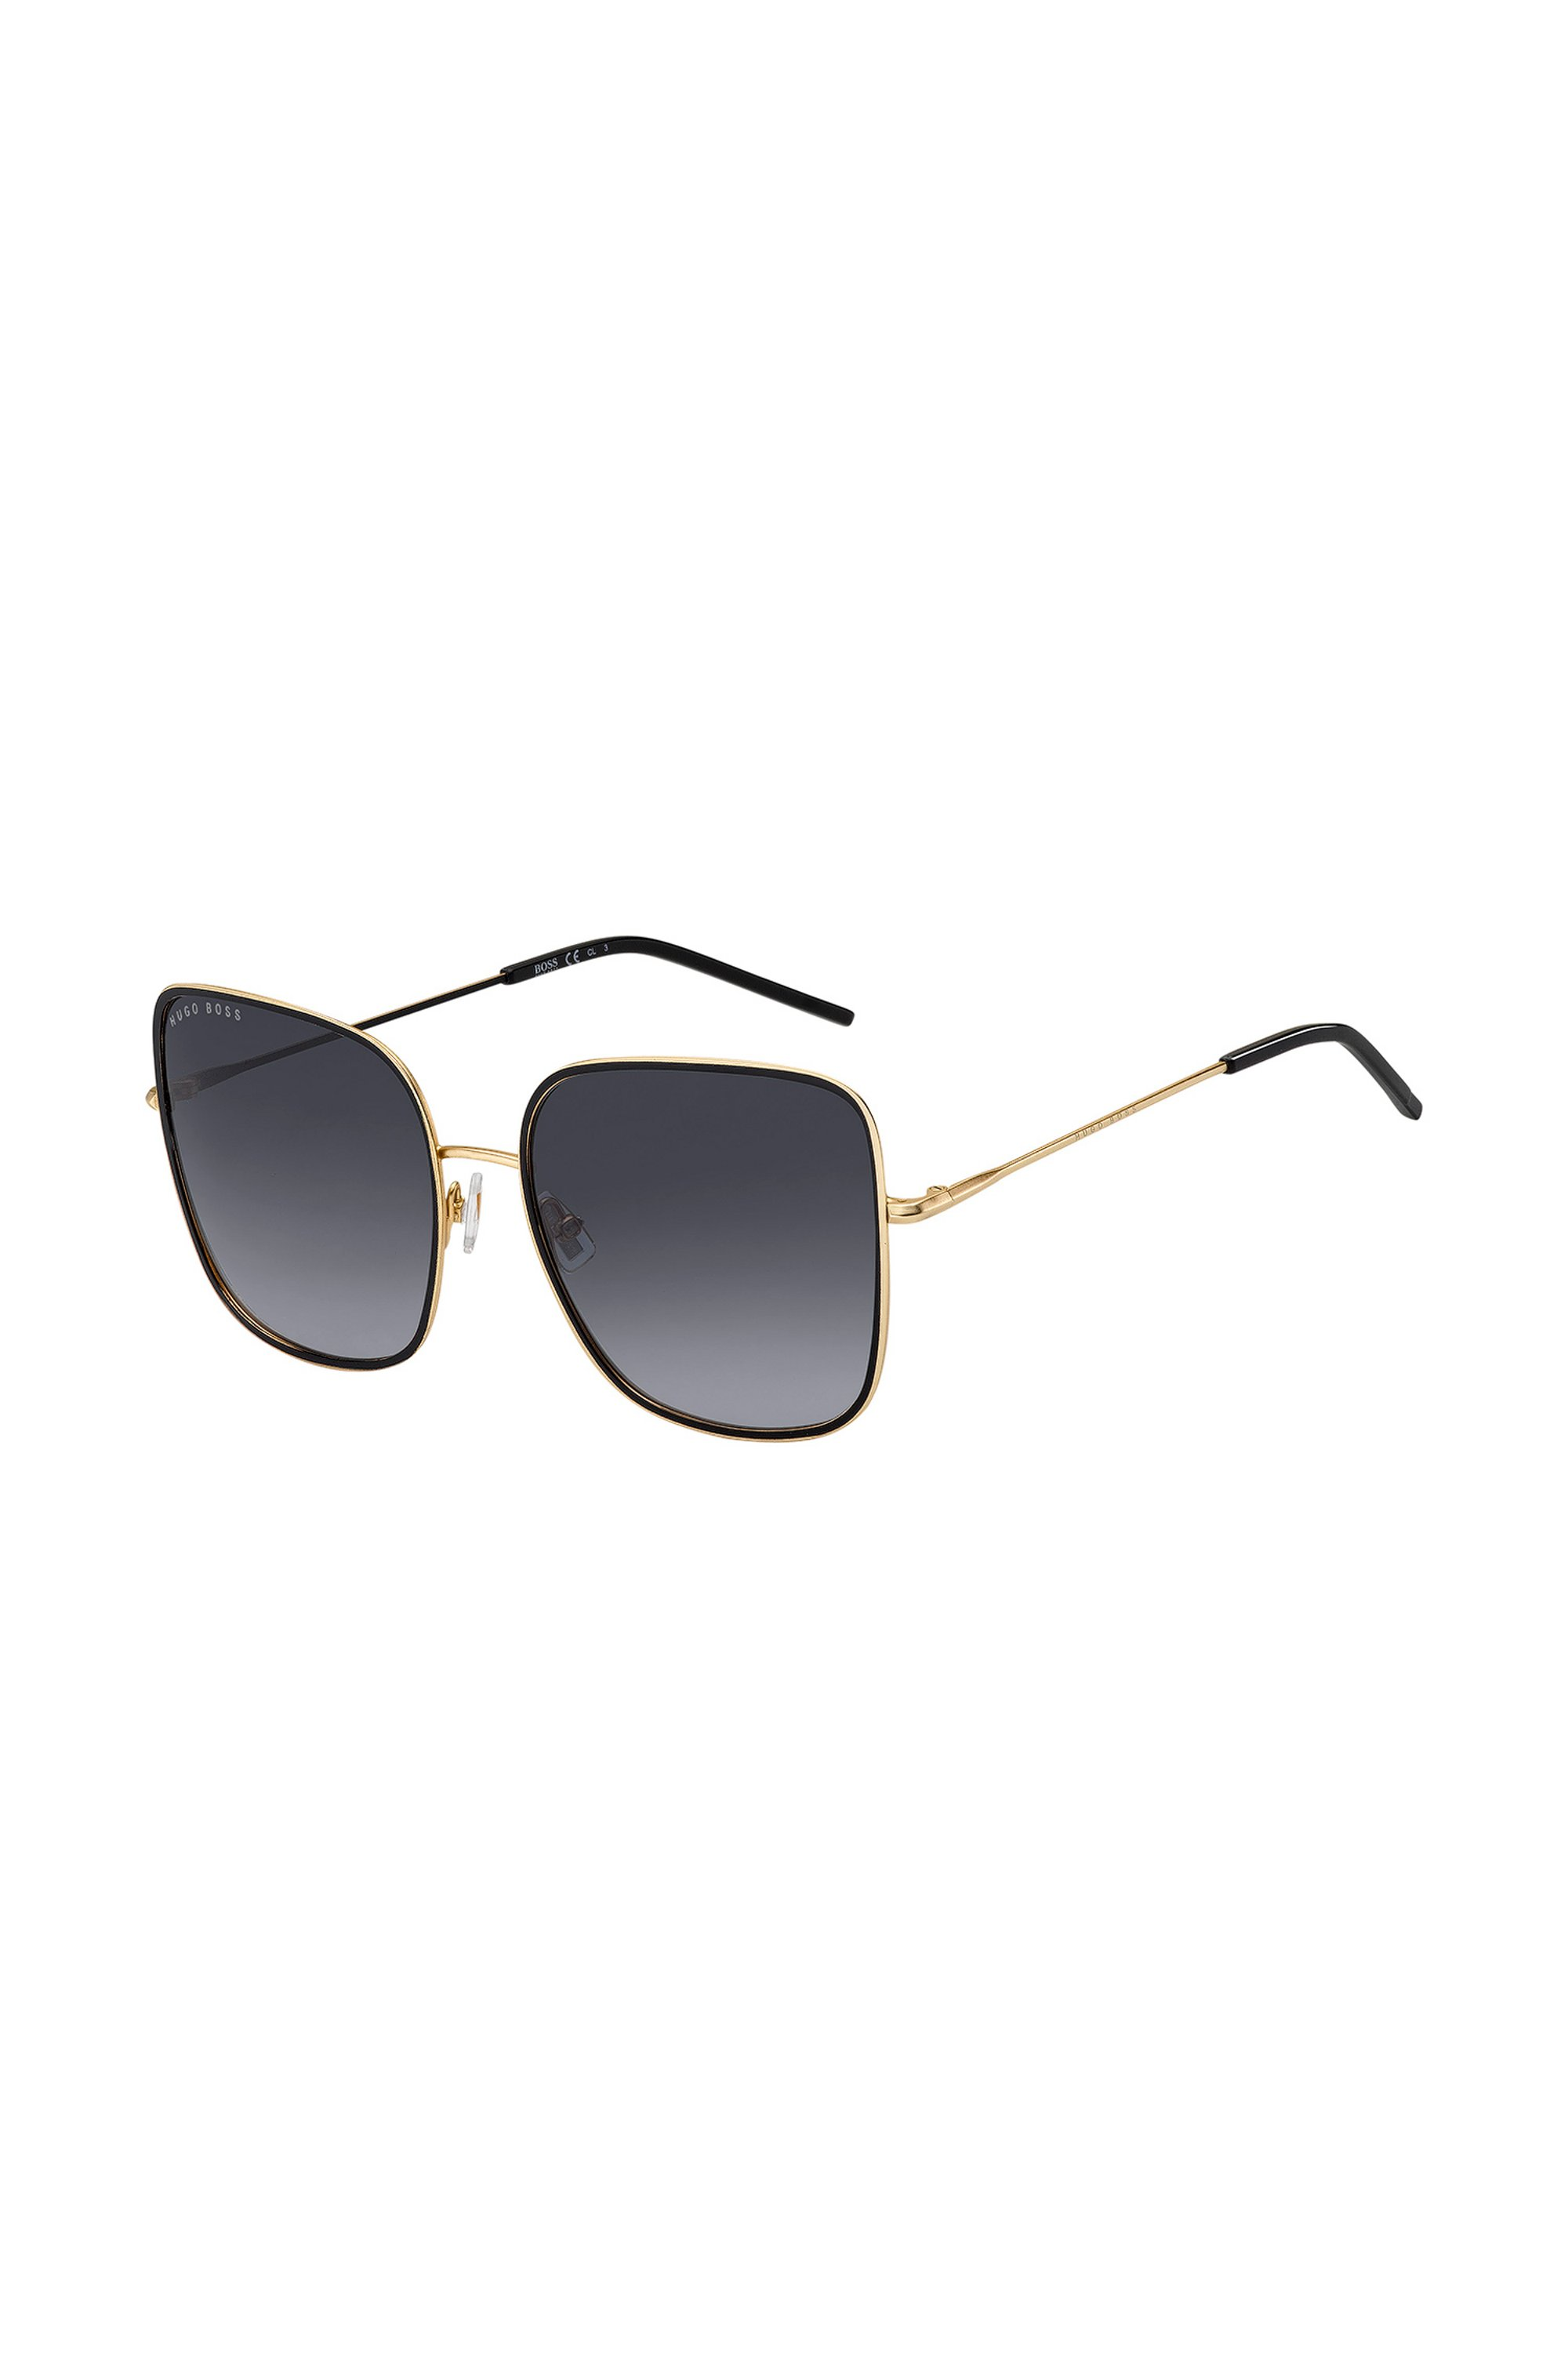 Grey-shaded sunglasses with black and gold finishes, Assorted-Pre-Pack